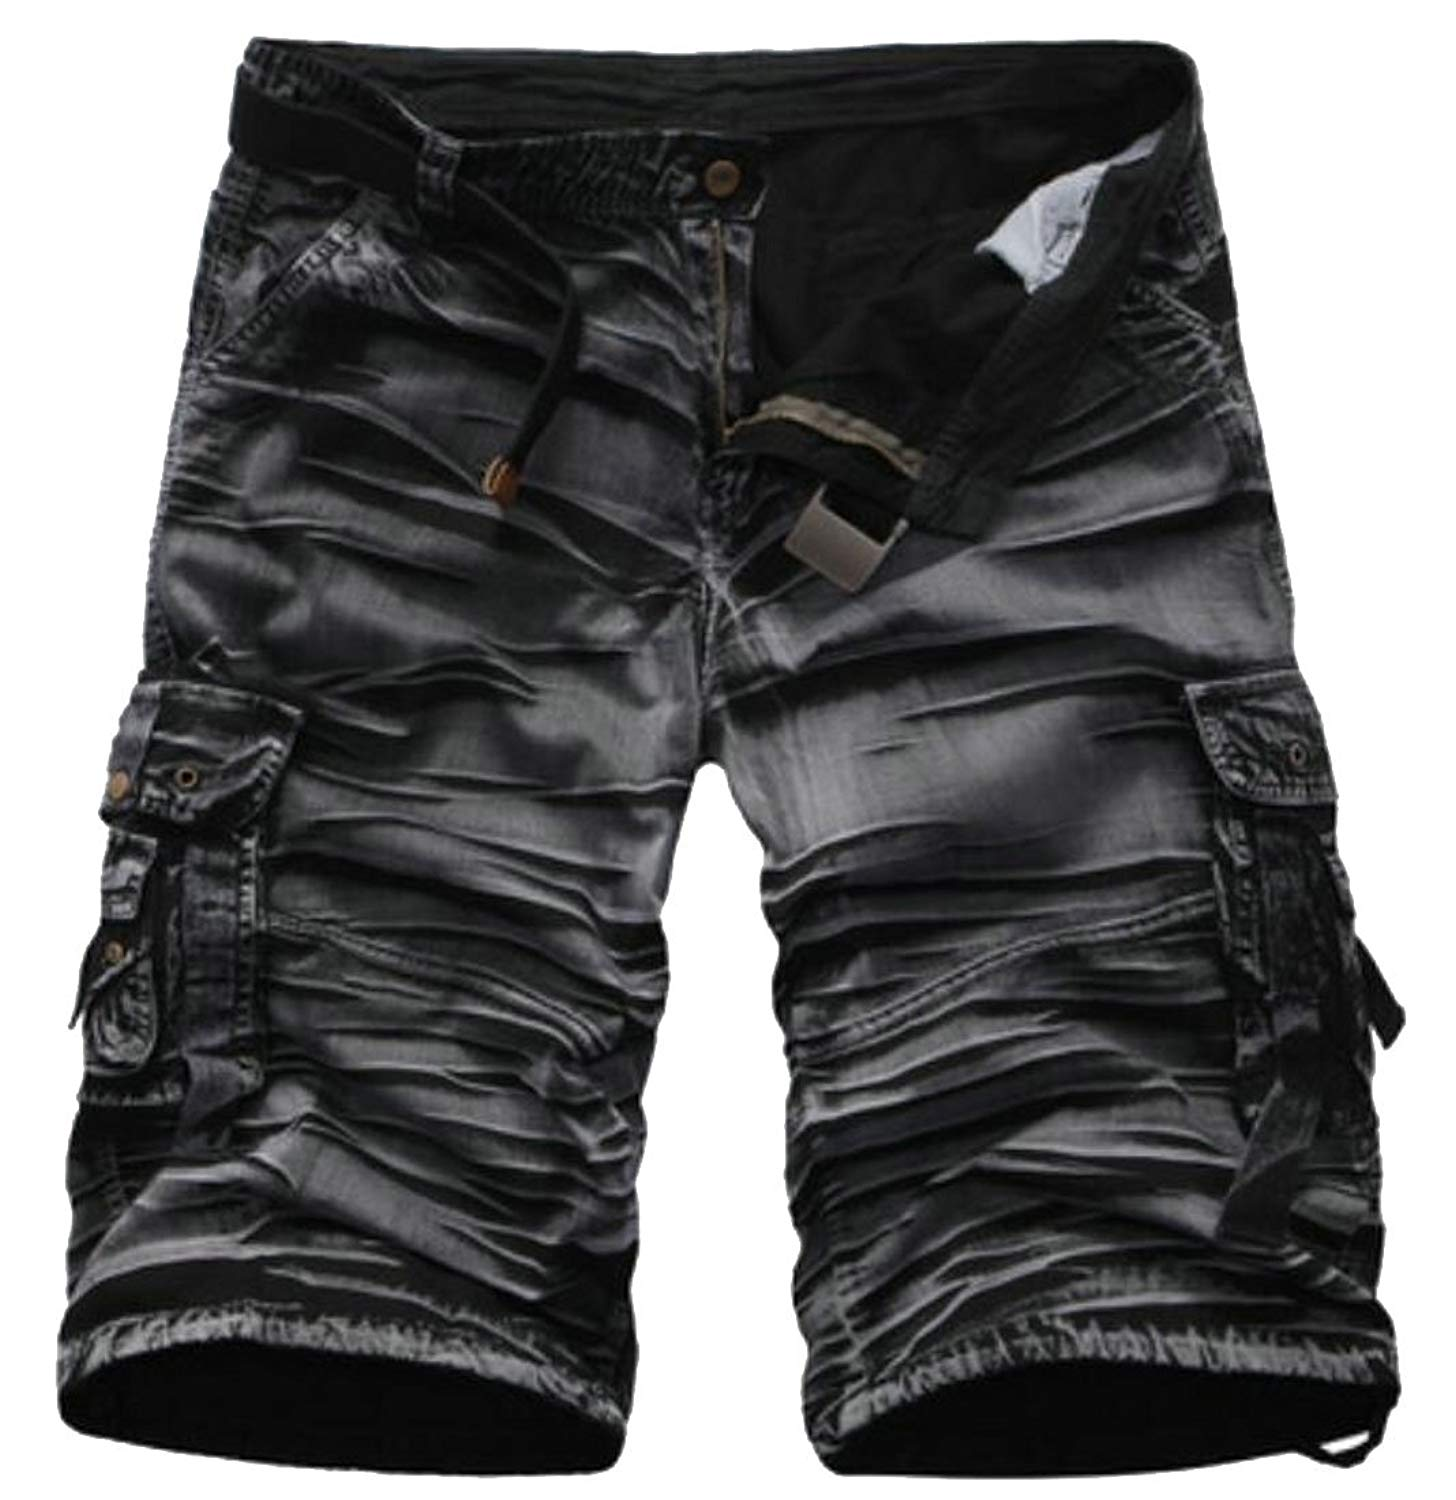 ffa707dbbf Get Quotations · Beloved Mens Casual Cargo Shorts,Mens Slim Fit Athletic  Twill Cargo Shorts